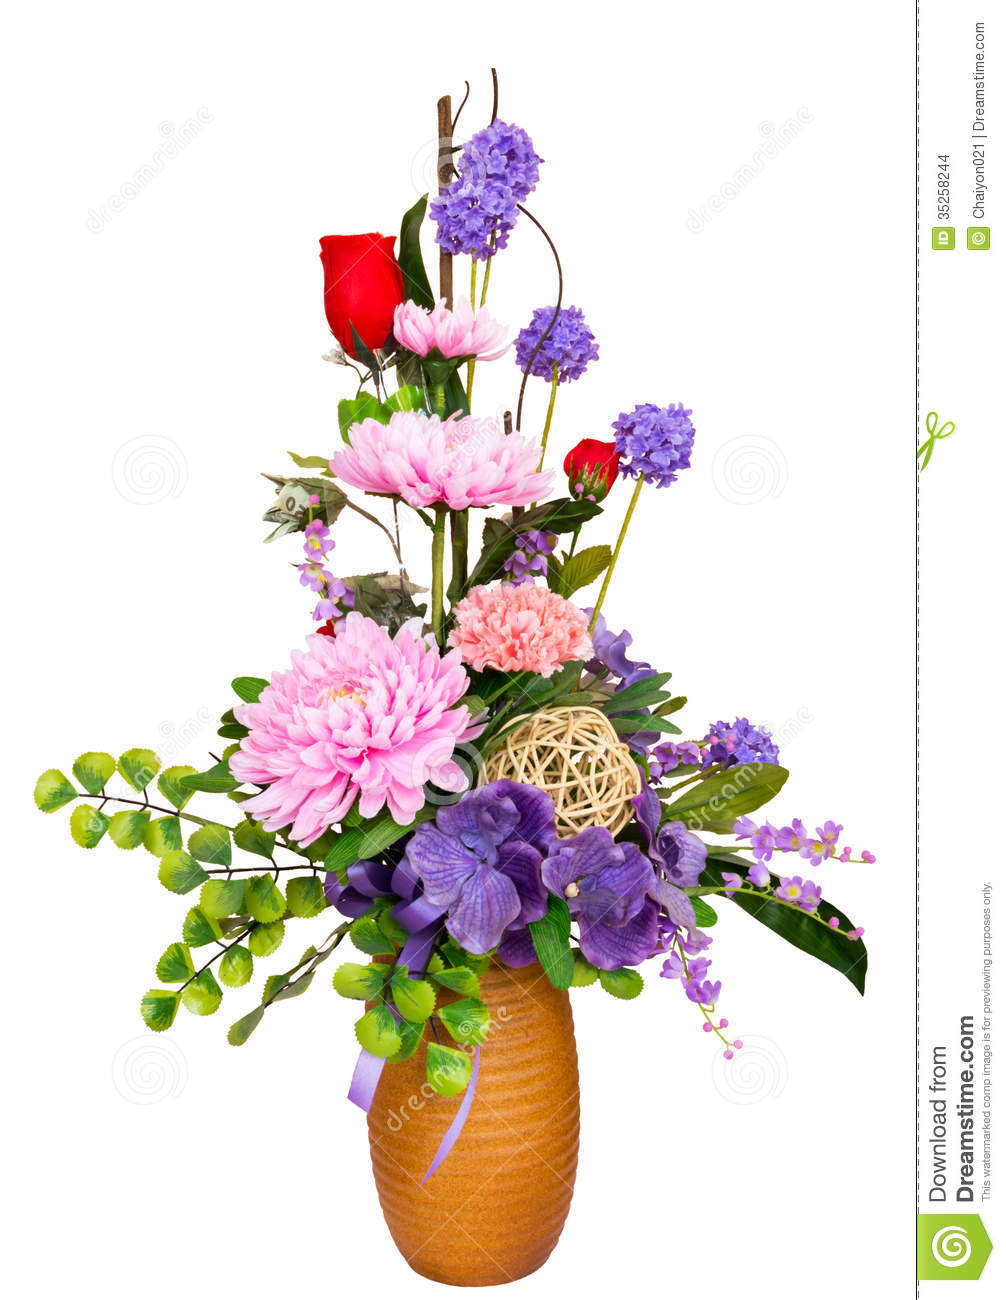 artificial background decorative flowers - Decorative Flowers